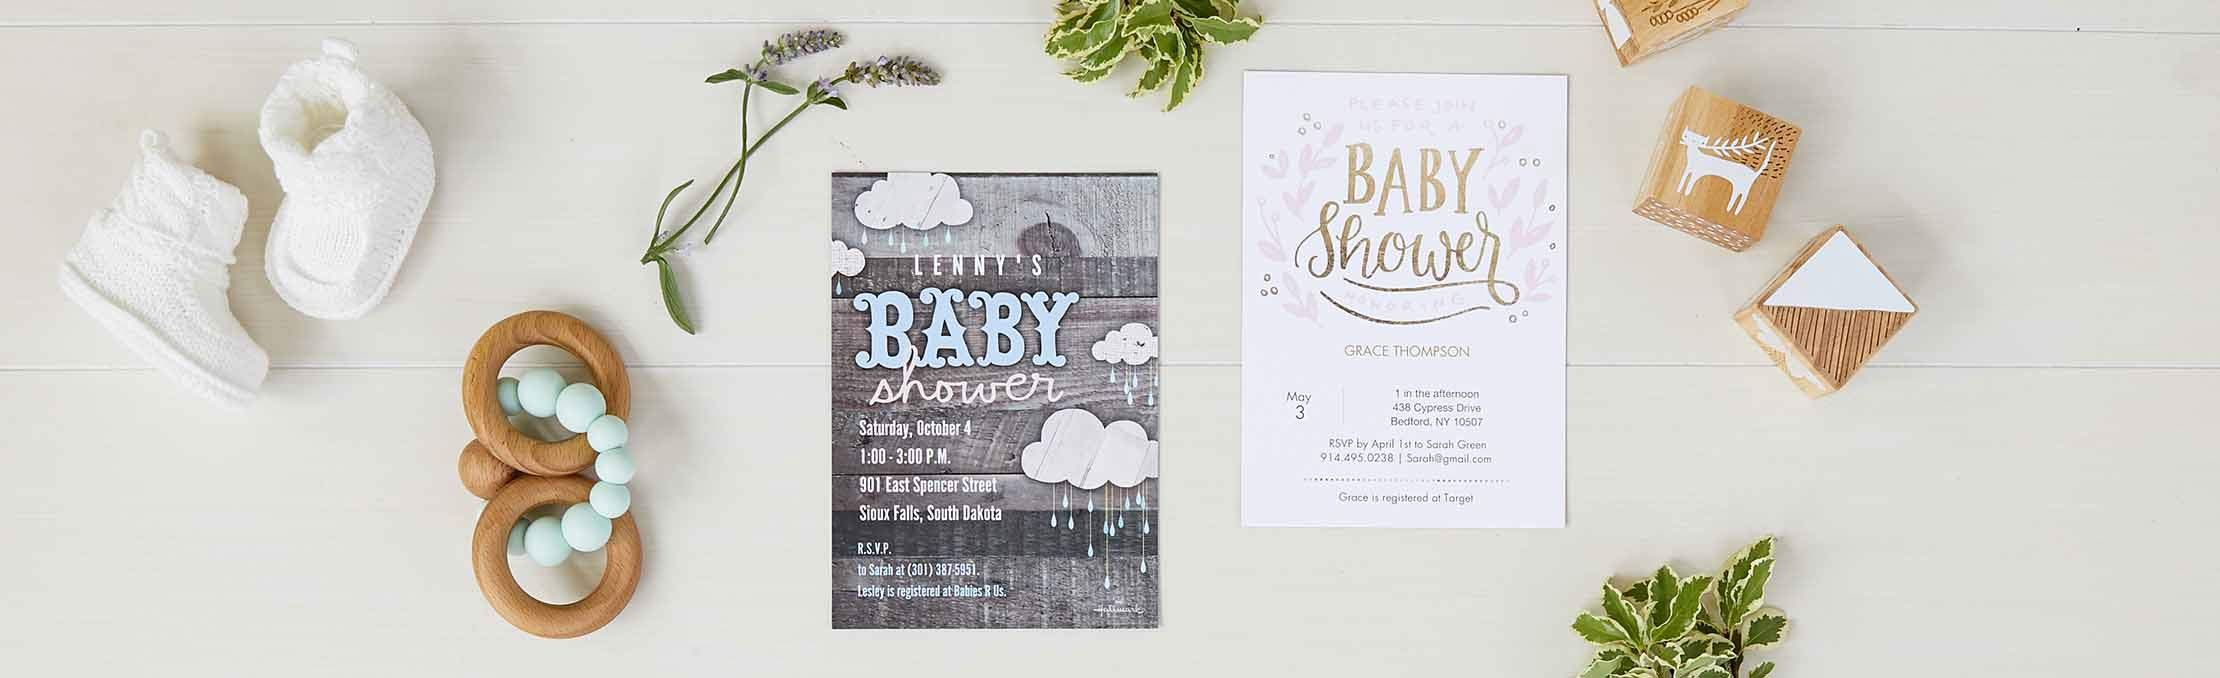 How To Word Invitations For Baby Shower For Boys Girls And Twins